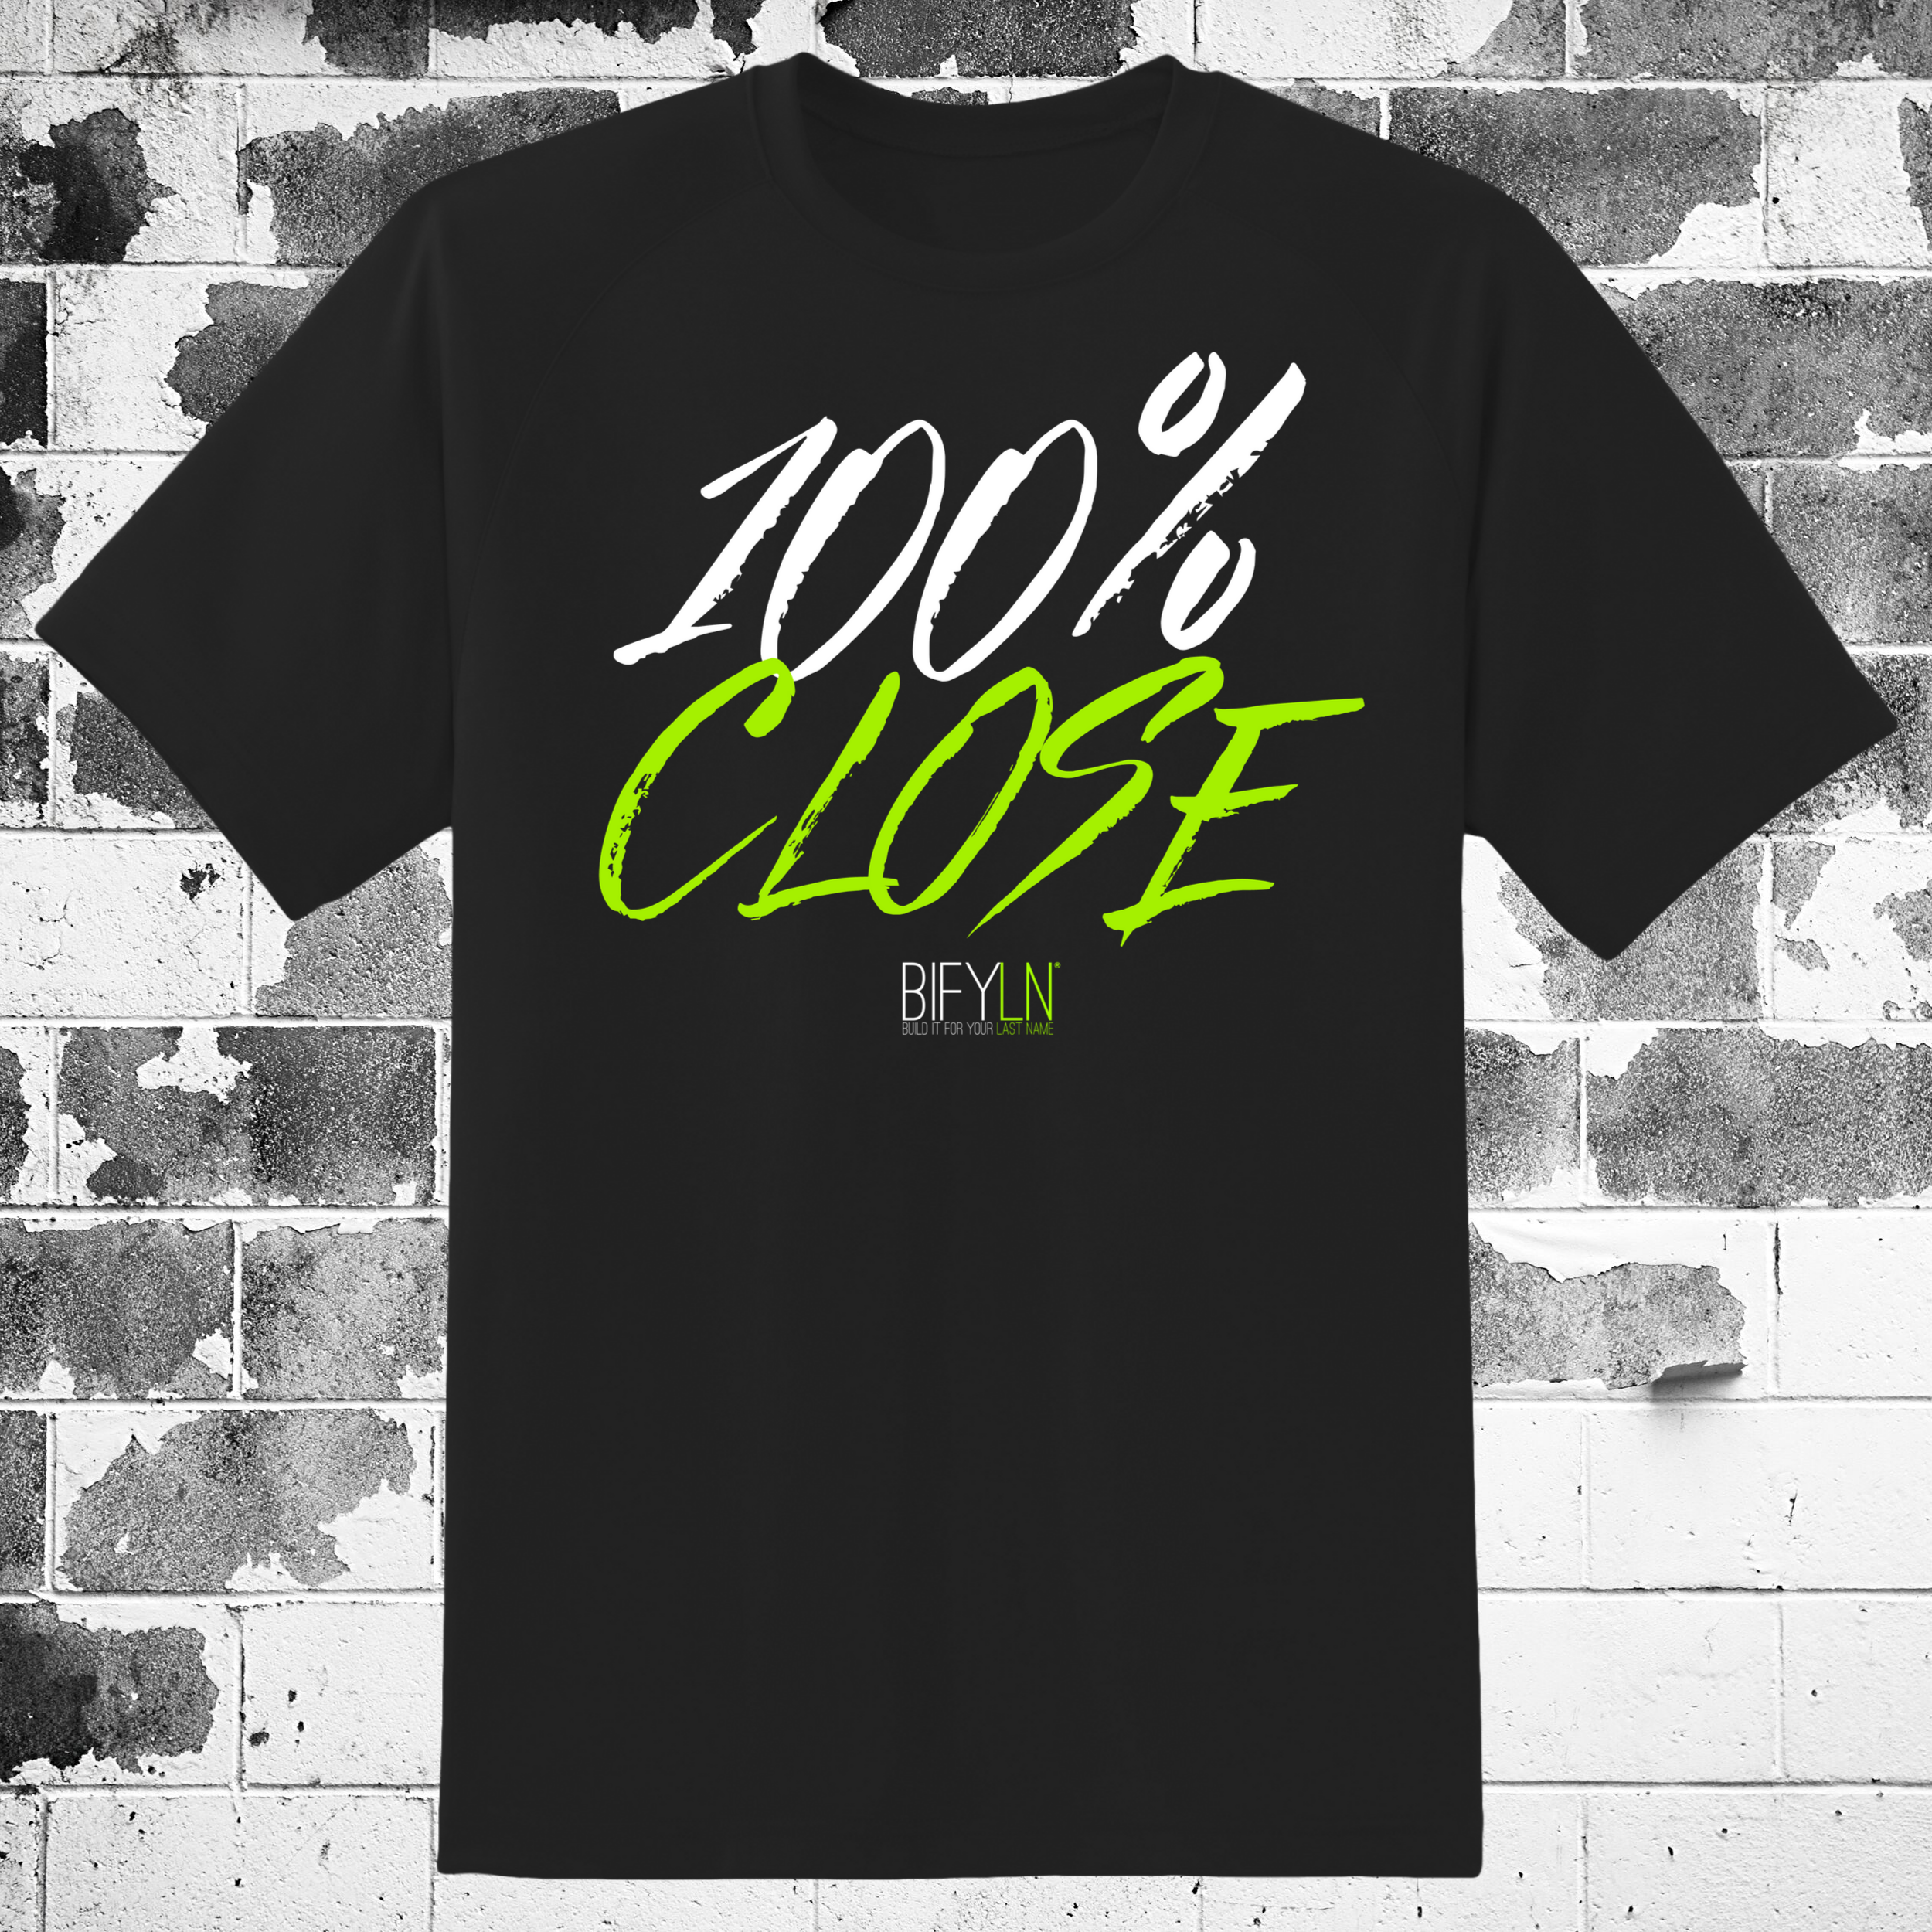 100 PERCENT CLOSE TSHIRT